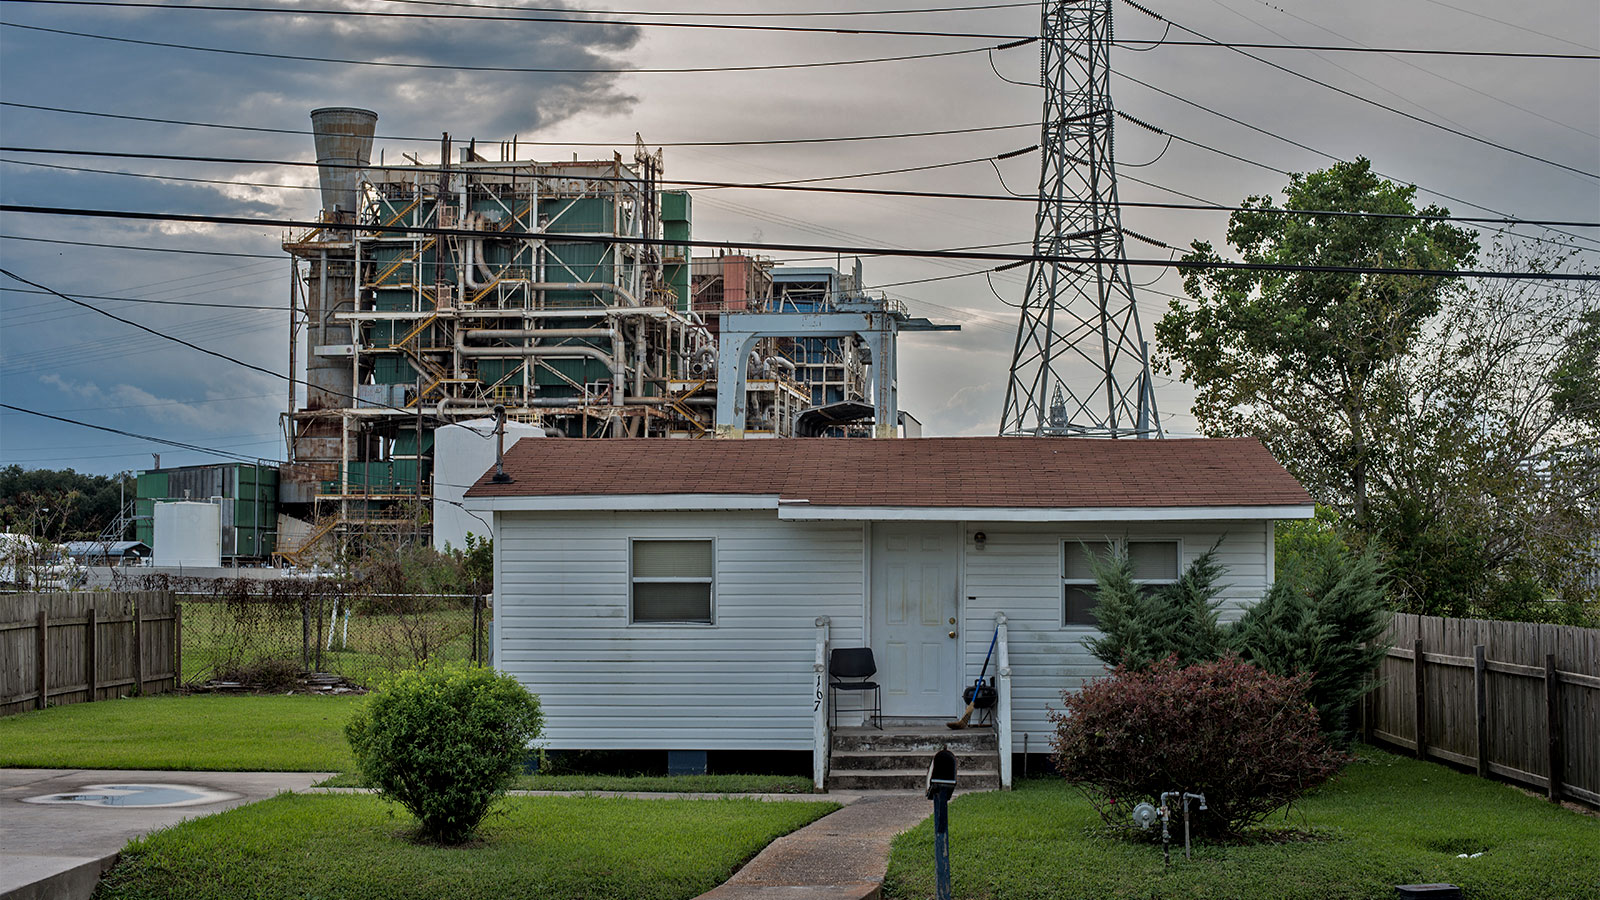 A house in front of a refinery in what is known as